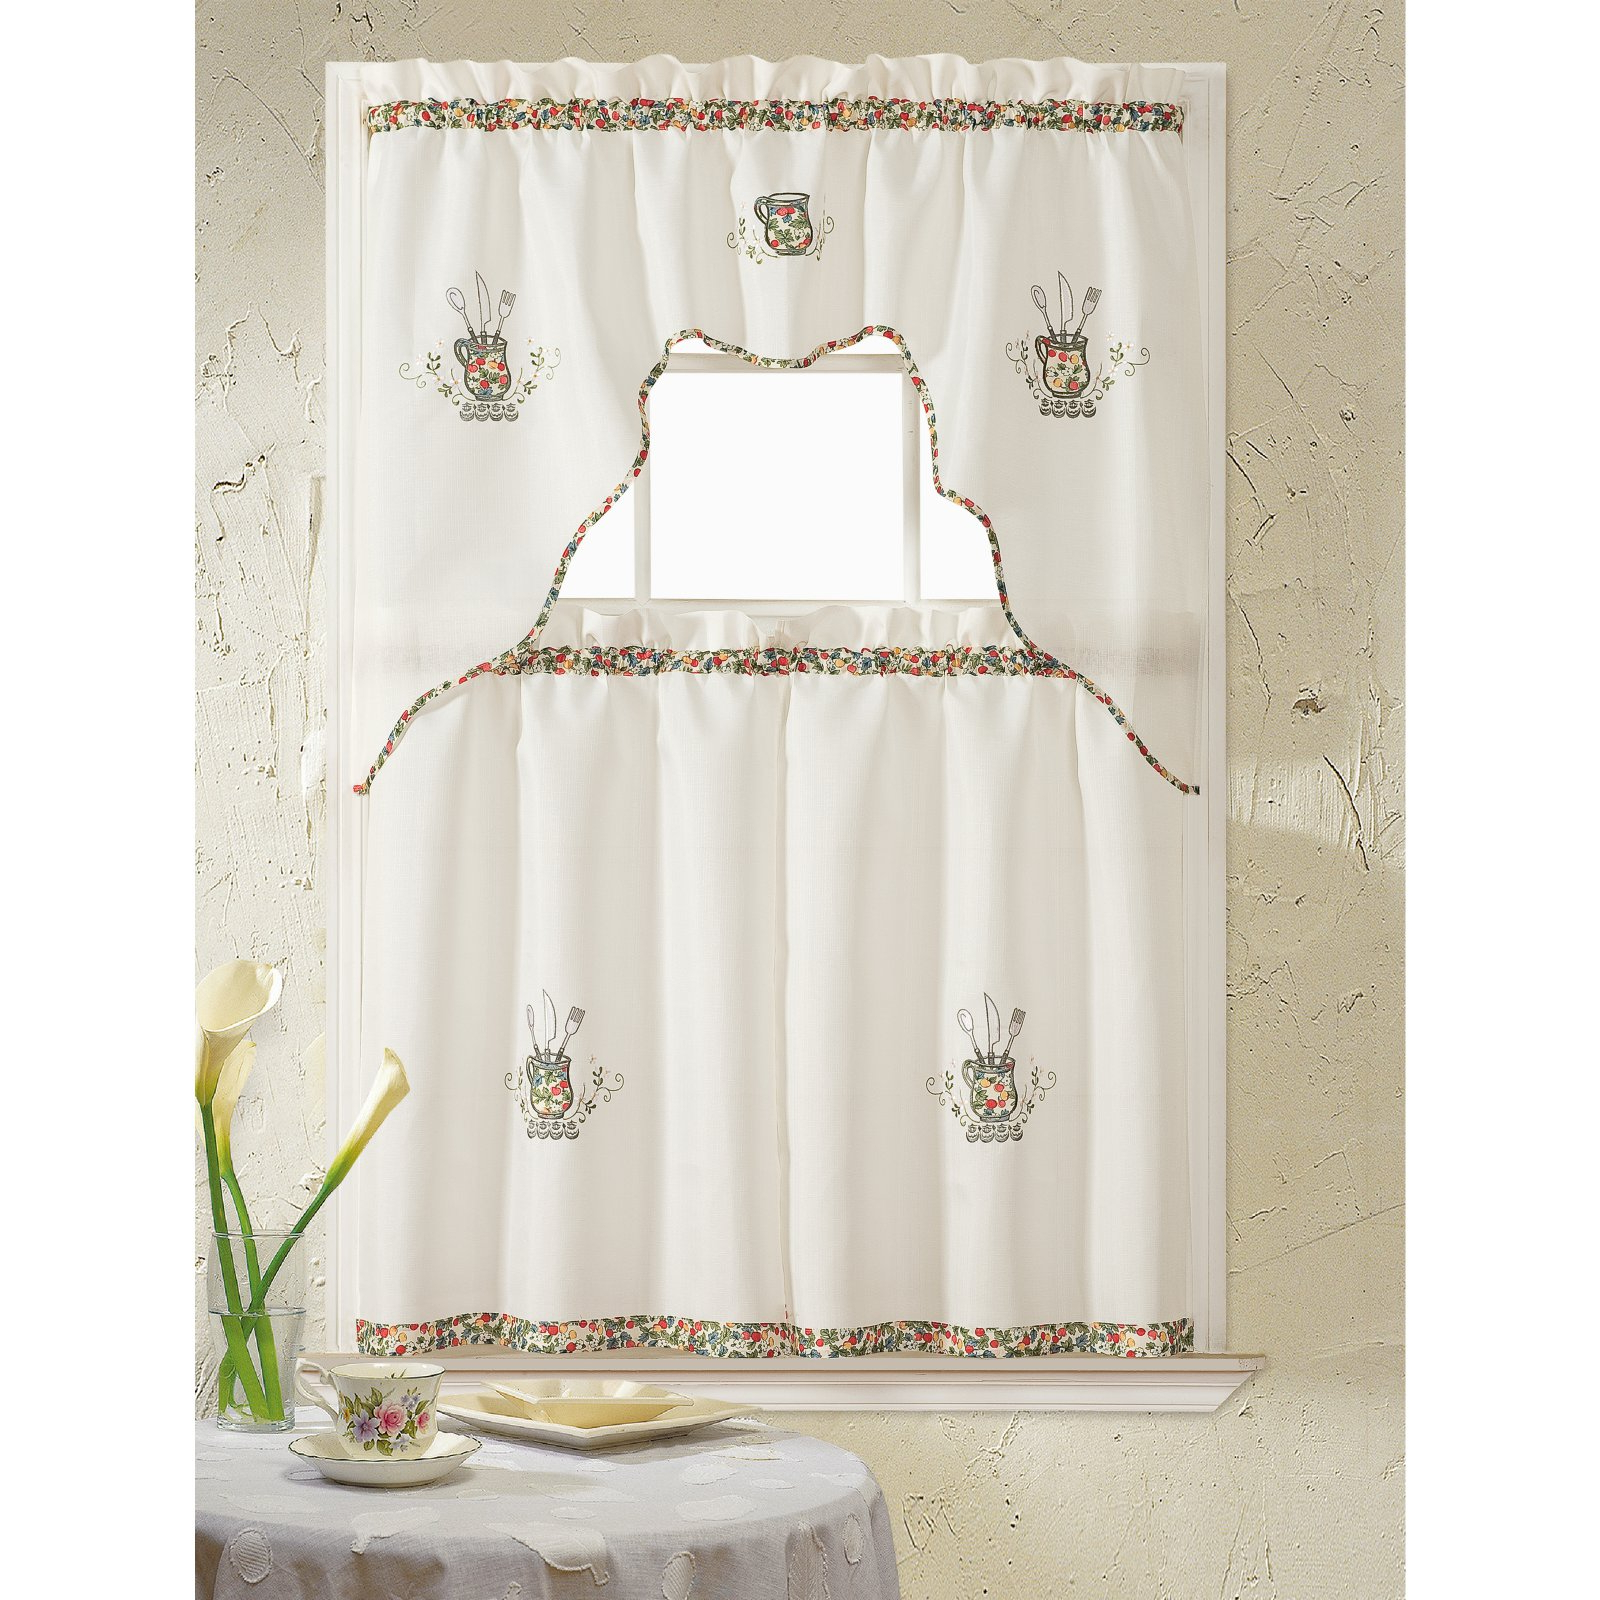 Rt Designers Collection Grand Silver Embroidered Kitchen Within Preferred Coffee Embroidered Kitchen Curtain Tier Sets (Gallery 5 of 20)